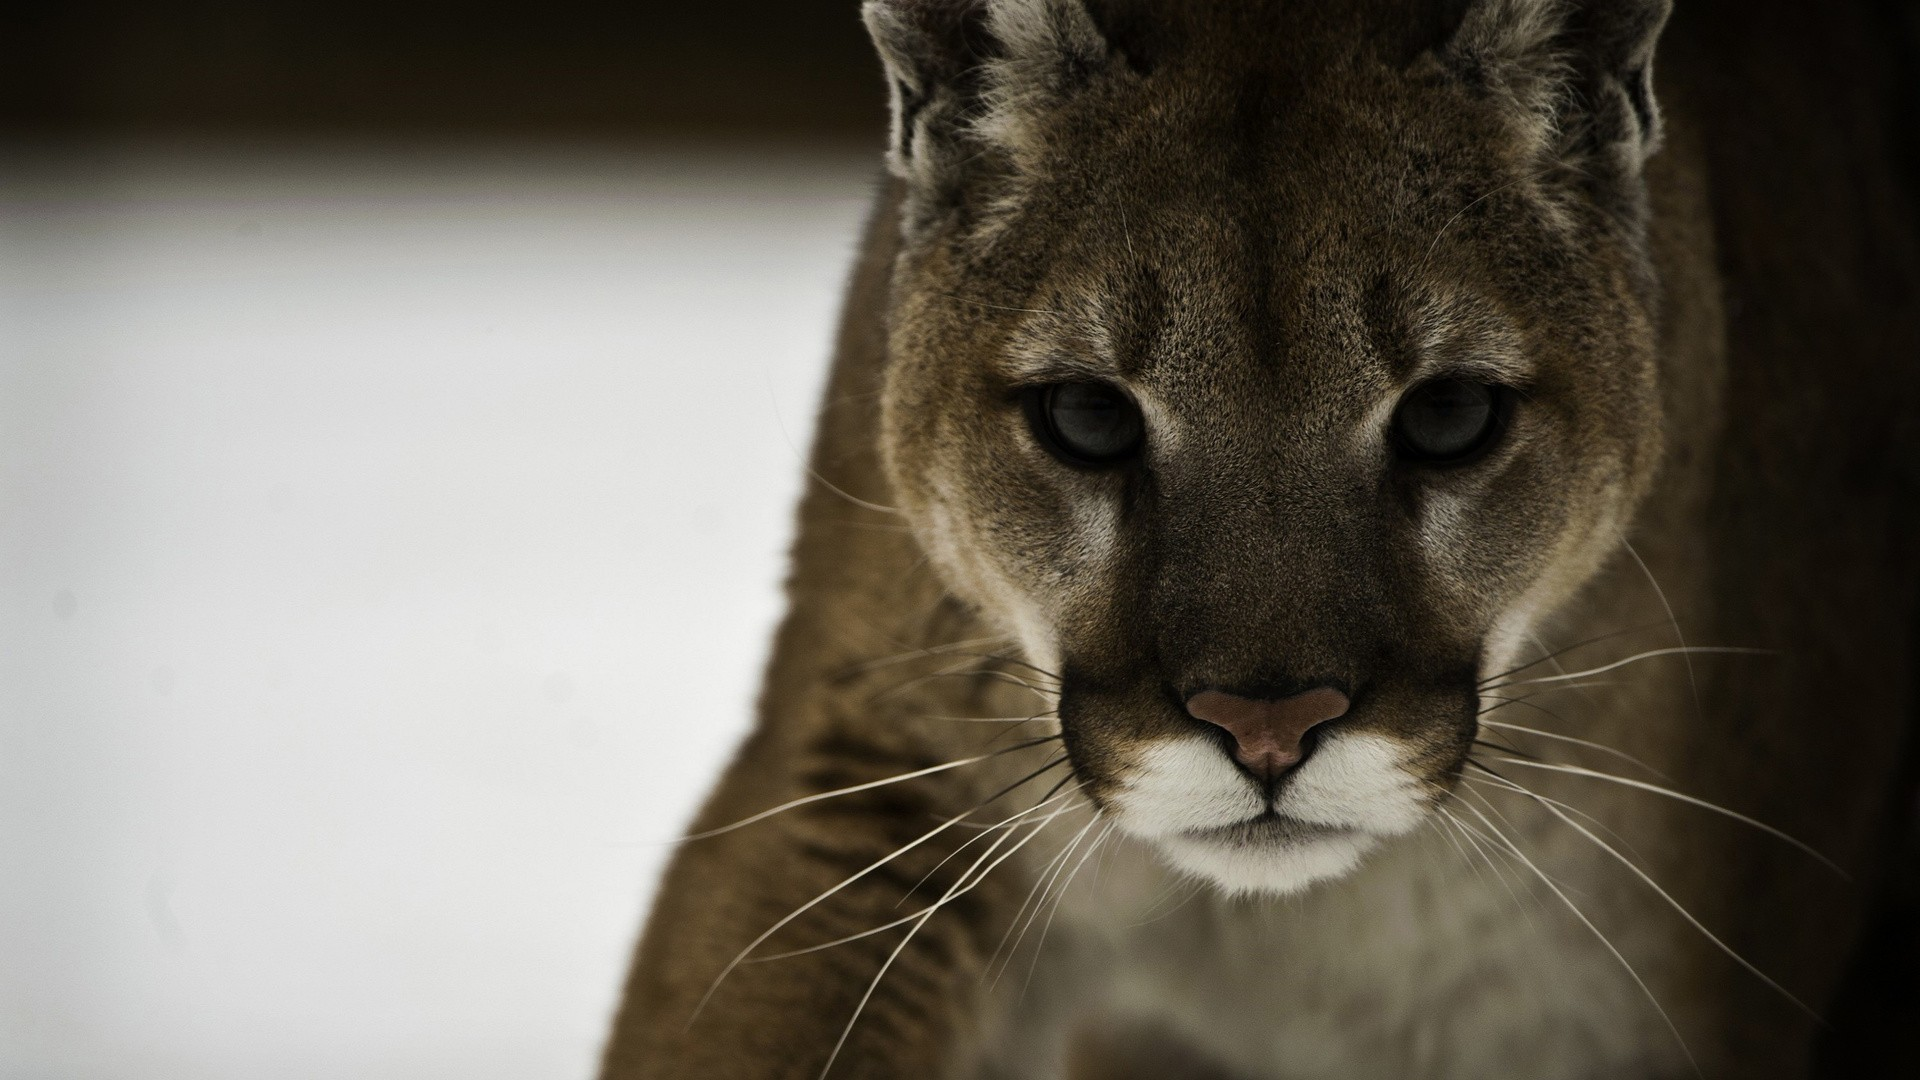 1920x1080 Cats - Cougar Puma Cat Photo Pictures for HD 16:9 High Definition 1080p 900p